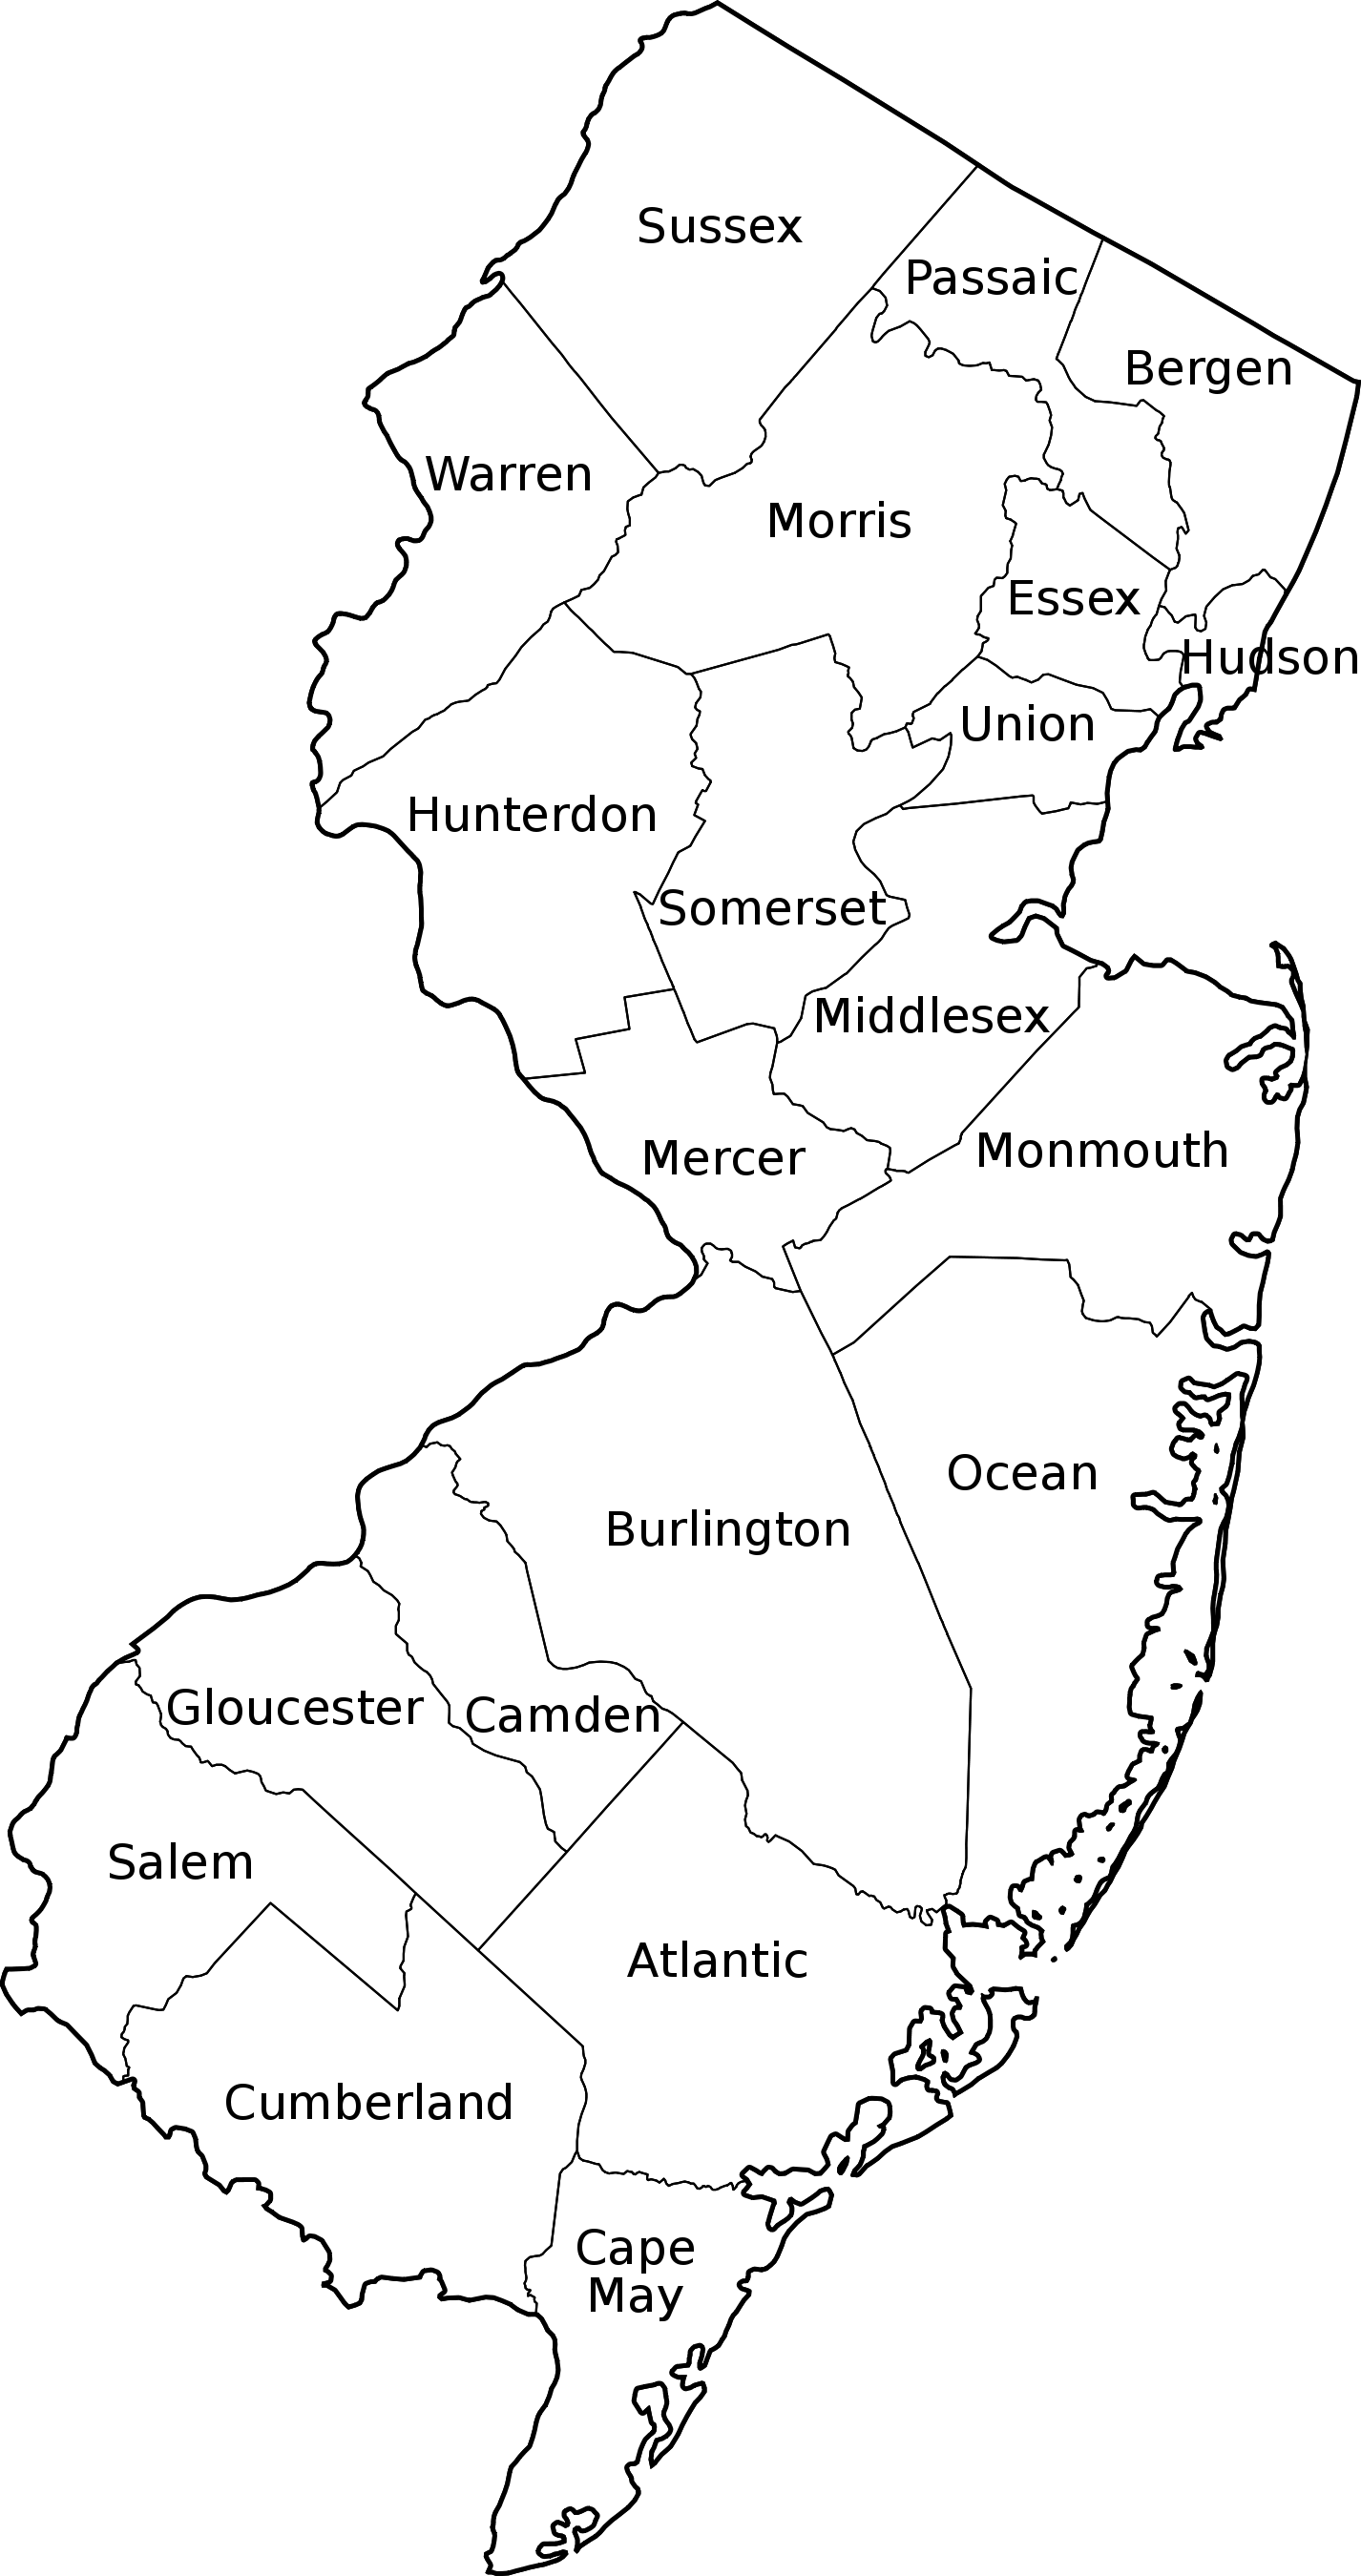 Map Of New Jersey Counties Google Search Map Skills - Map of us with west highlighted transparent